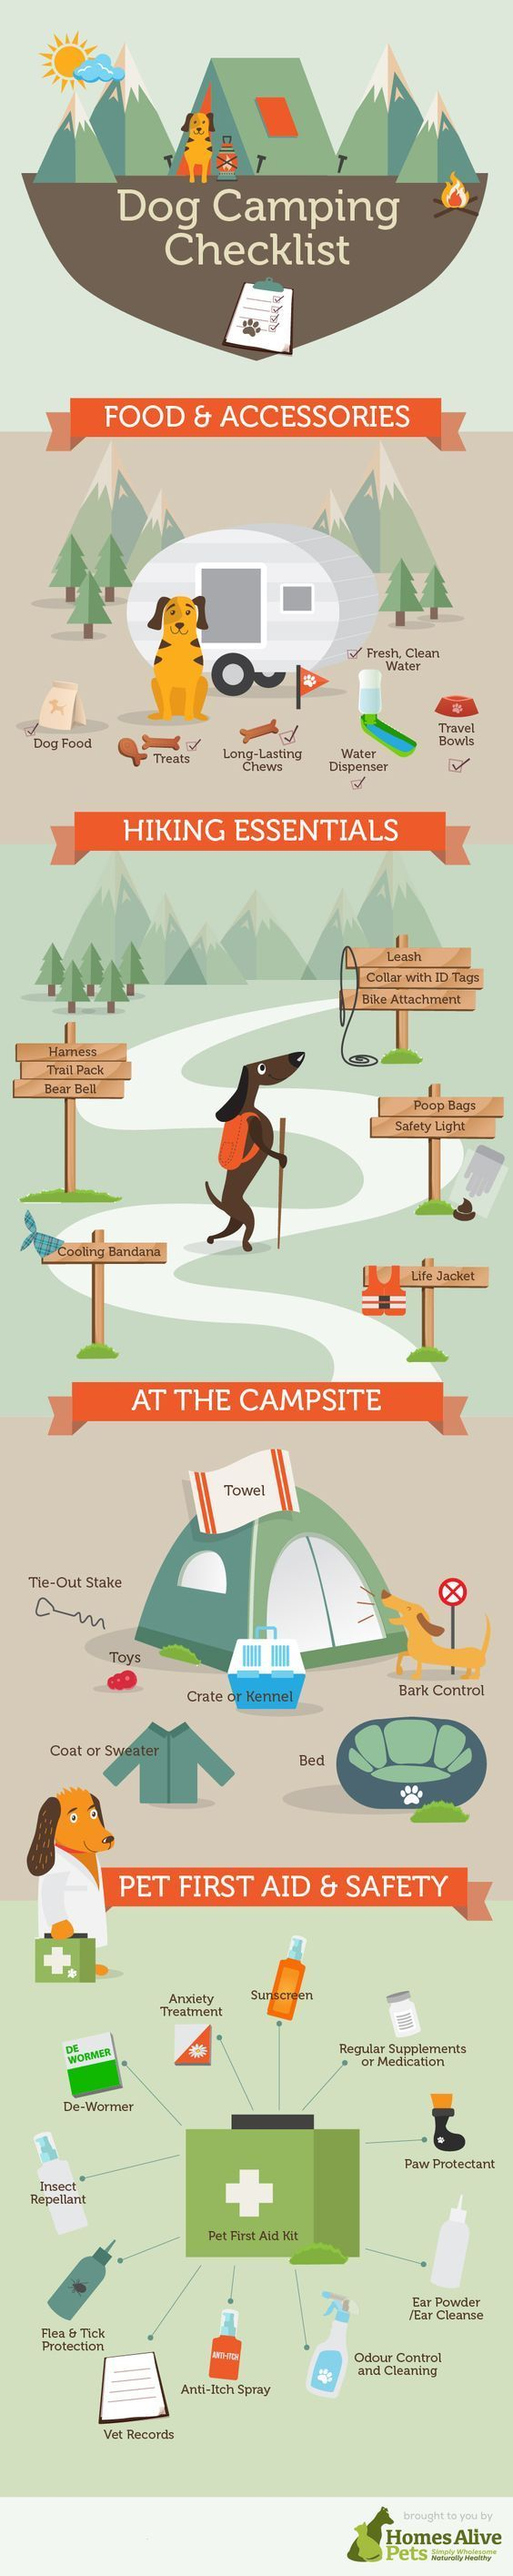 Tips On Camping With Your Dog – Browse this page for Tips On Camping With Your Dog so you can enjoy summer with your favorite buddy.